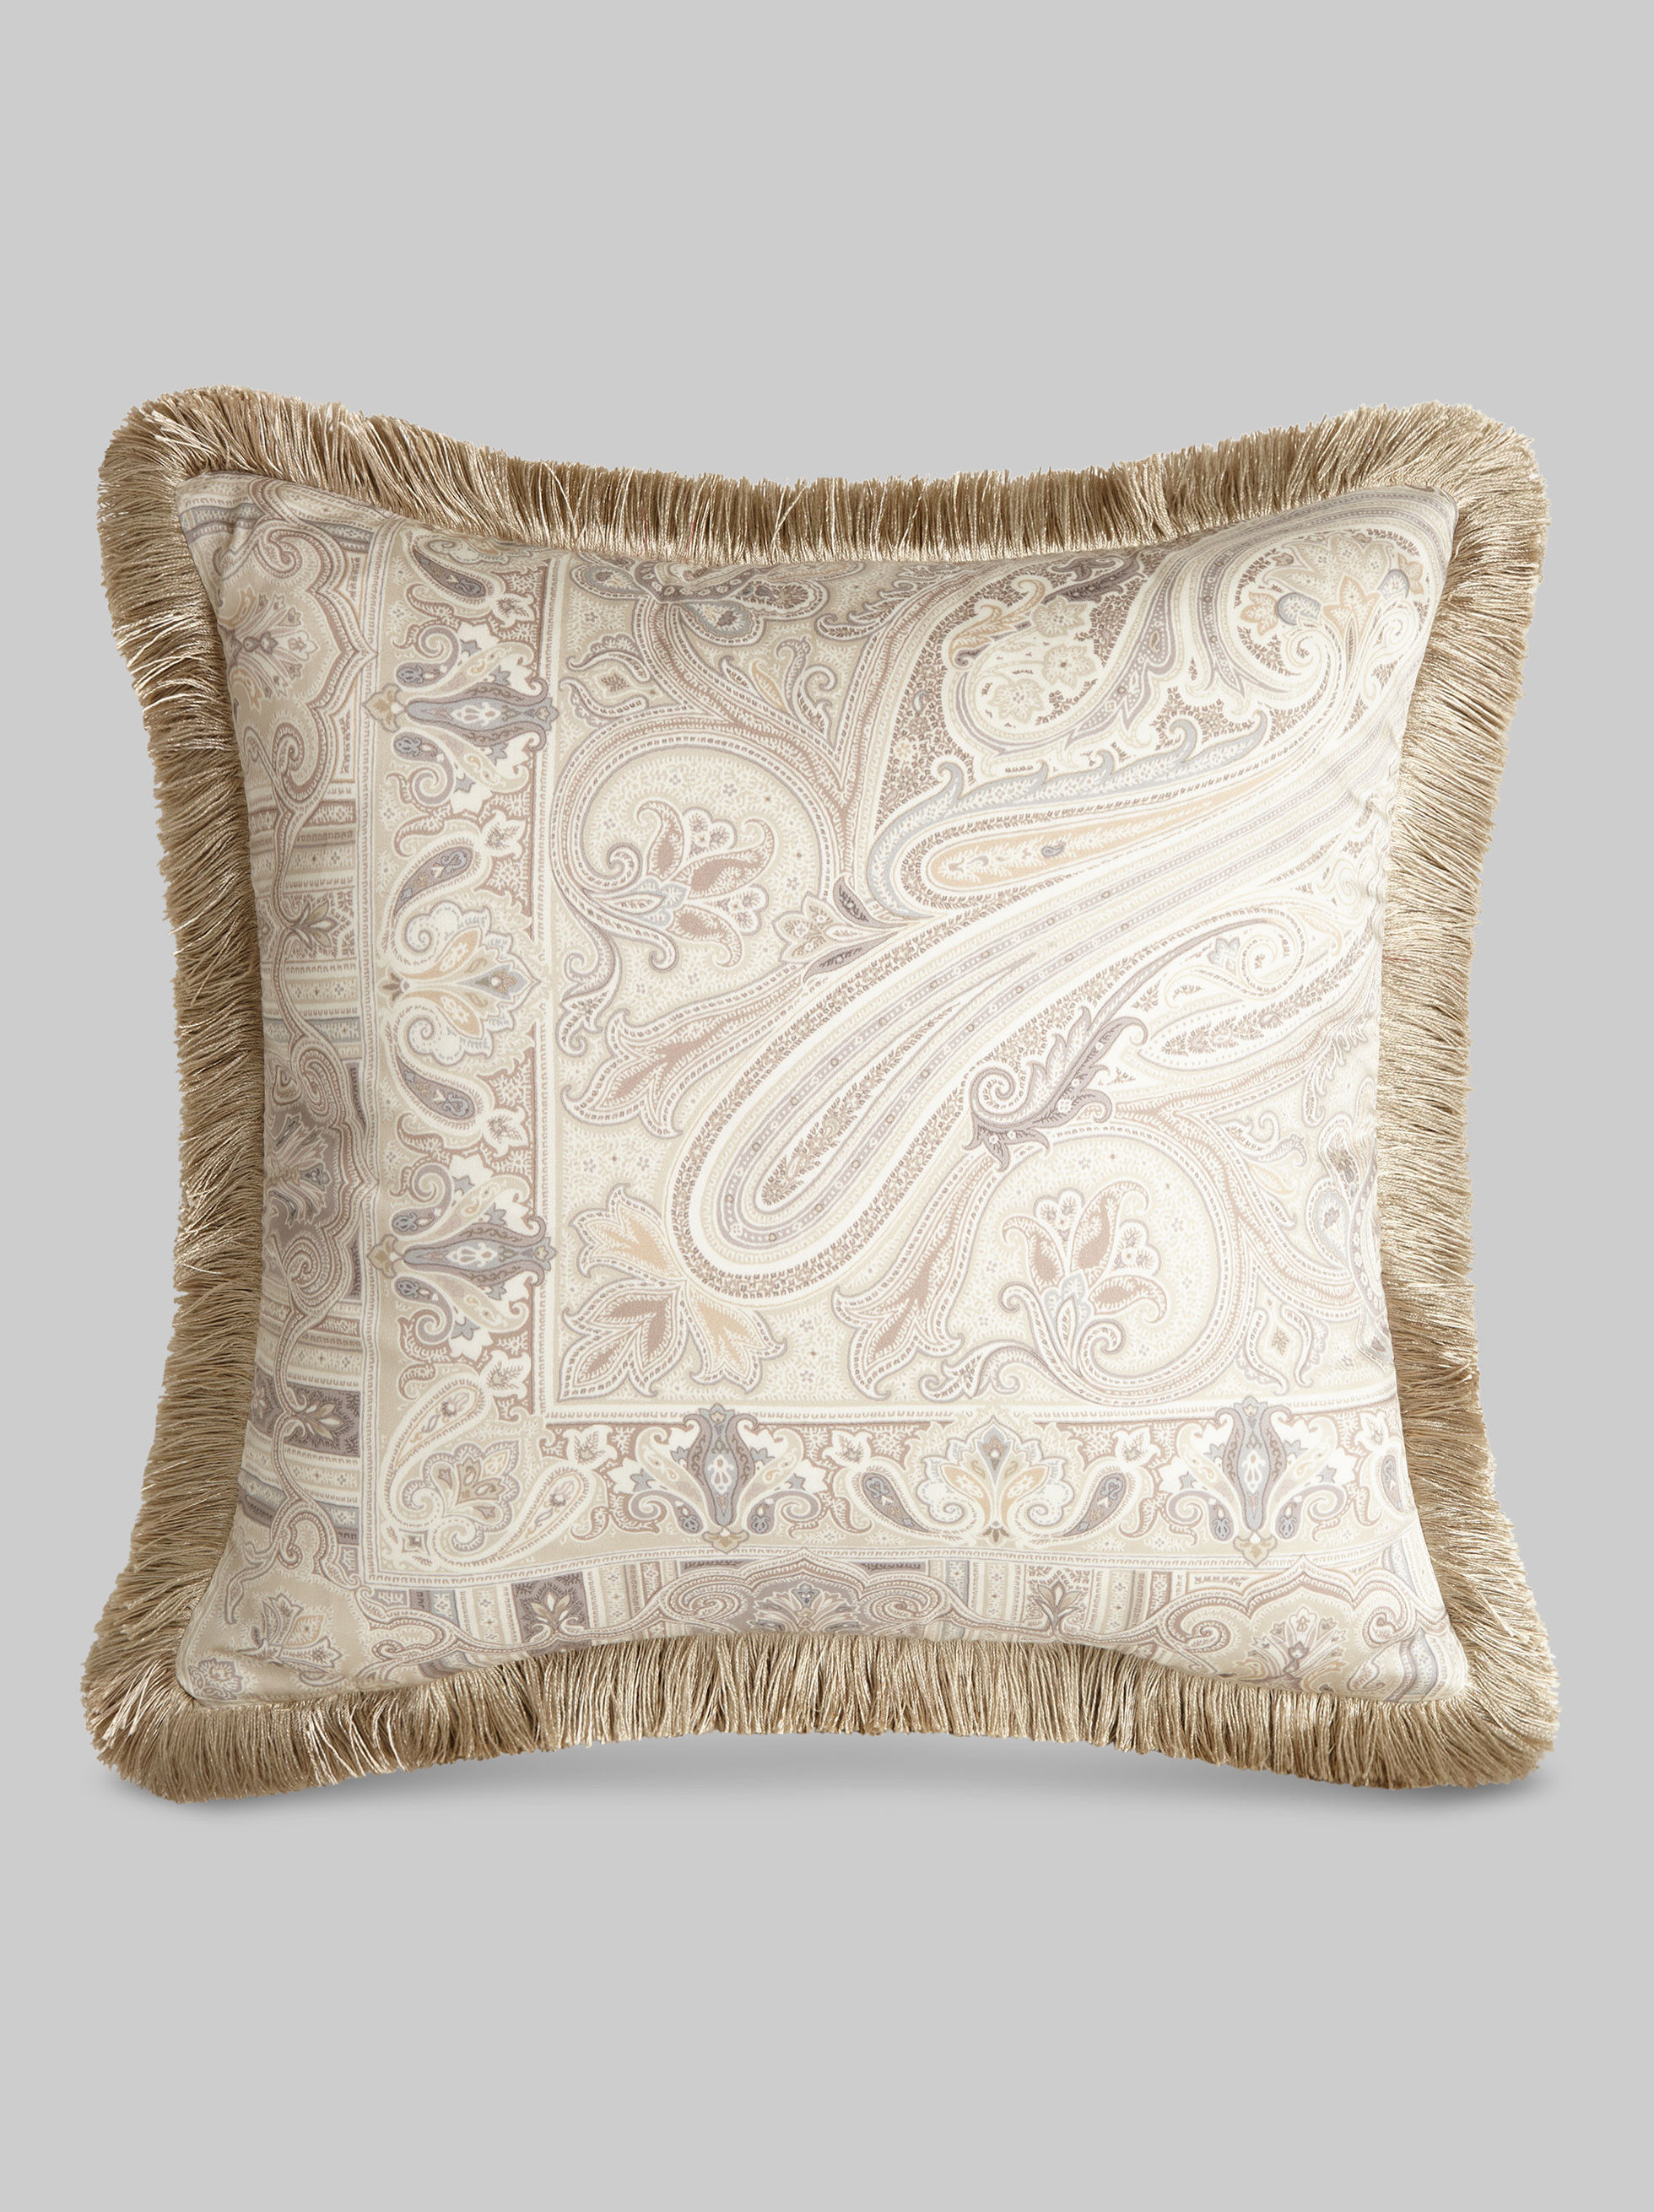 SATIN CUSHION WITH PAISLEY PATTERNS